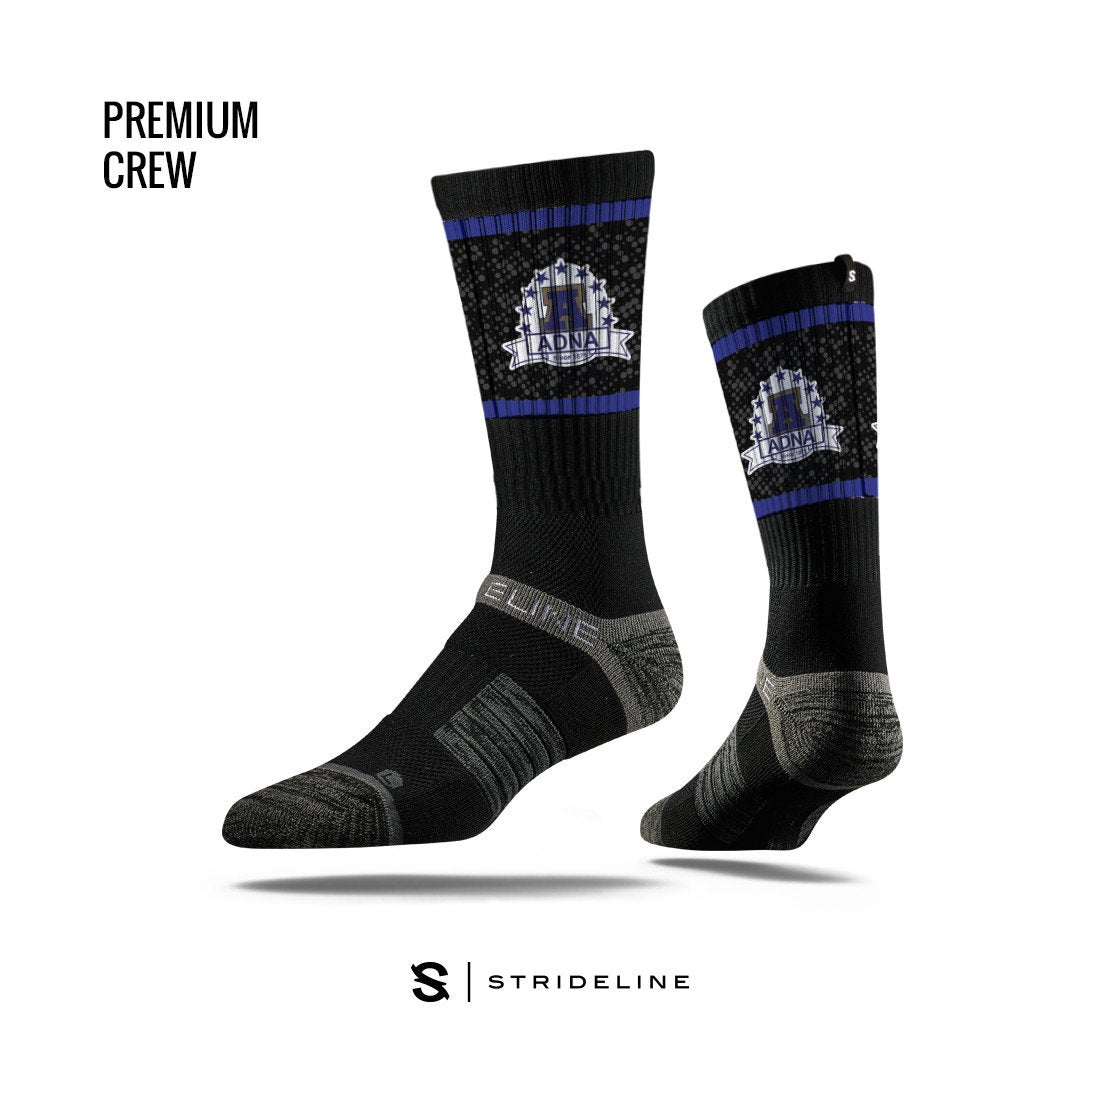 Adna High School Apparel | Socks | Premium